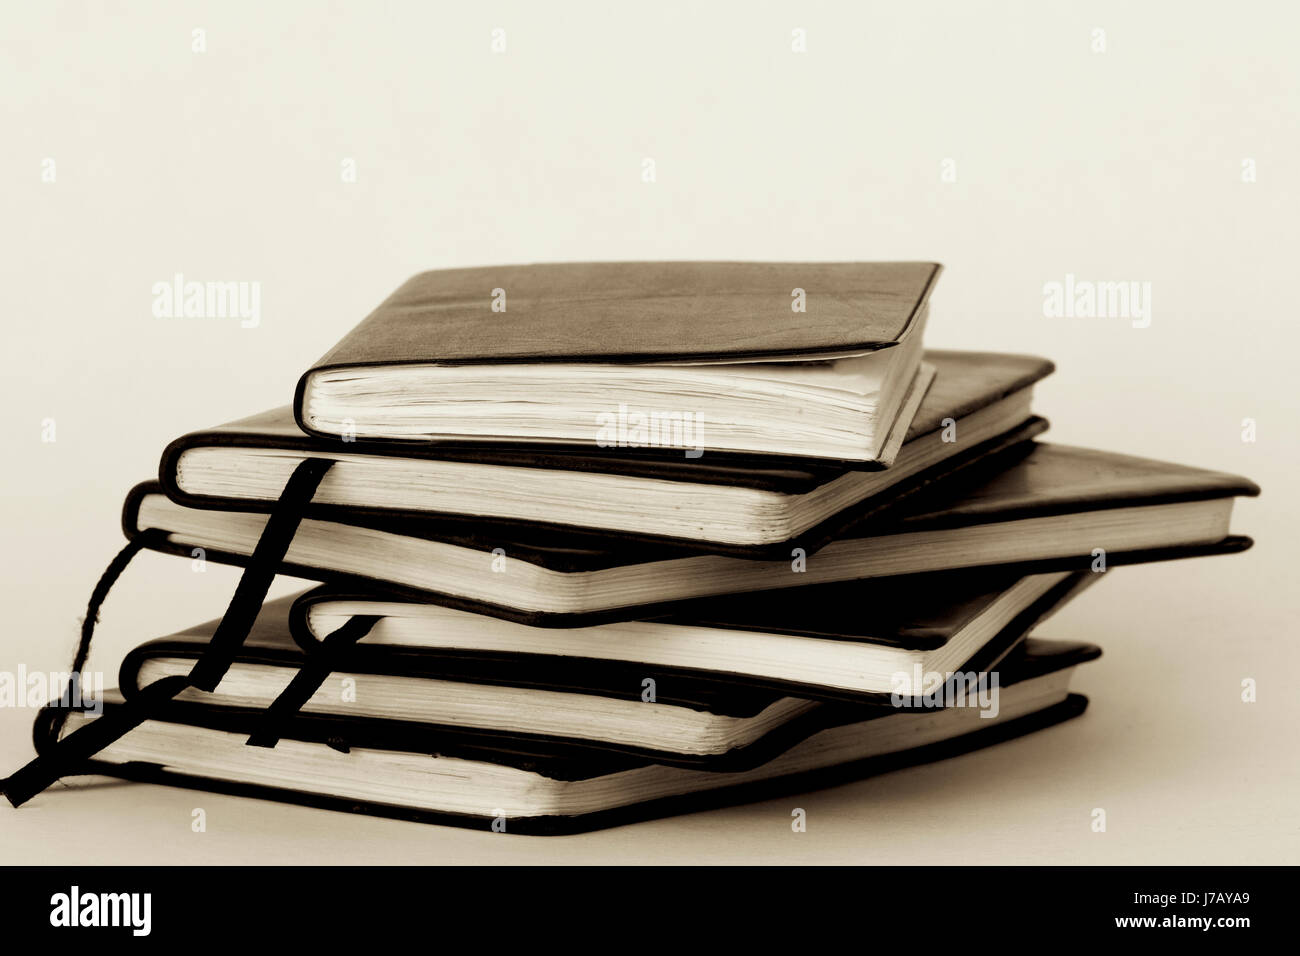 Stack of old leather covered diaries: black and white photo. - Stock Image